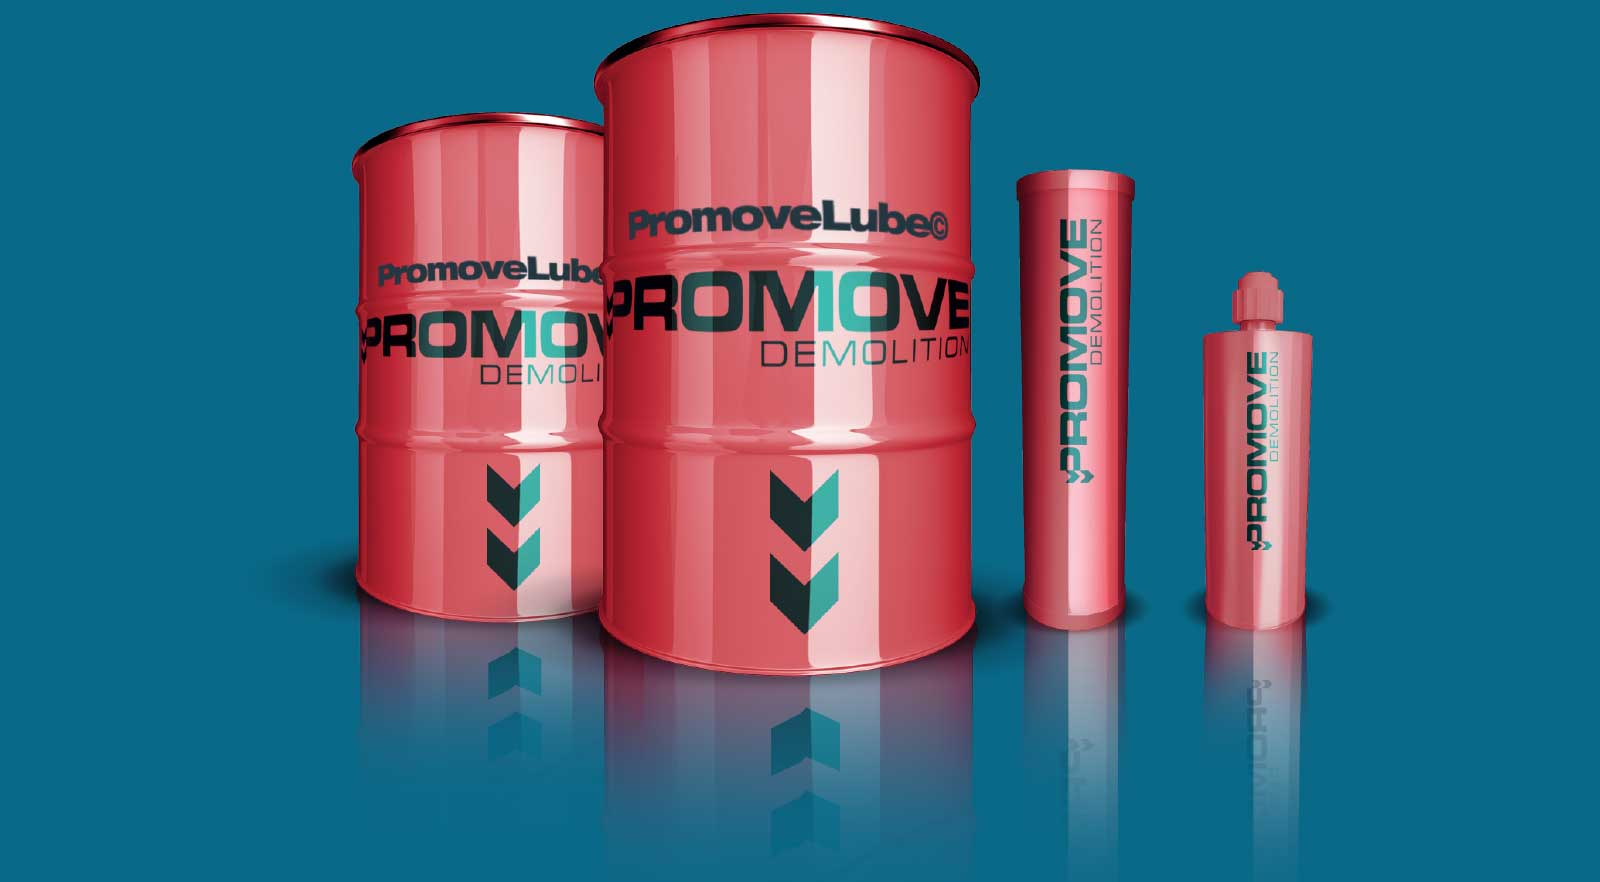 Promove & PromoveLube, a long lasting quality.